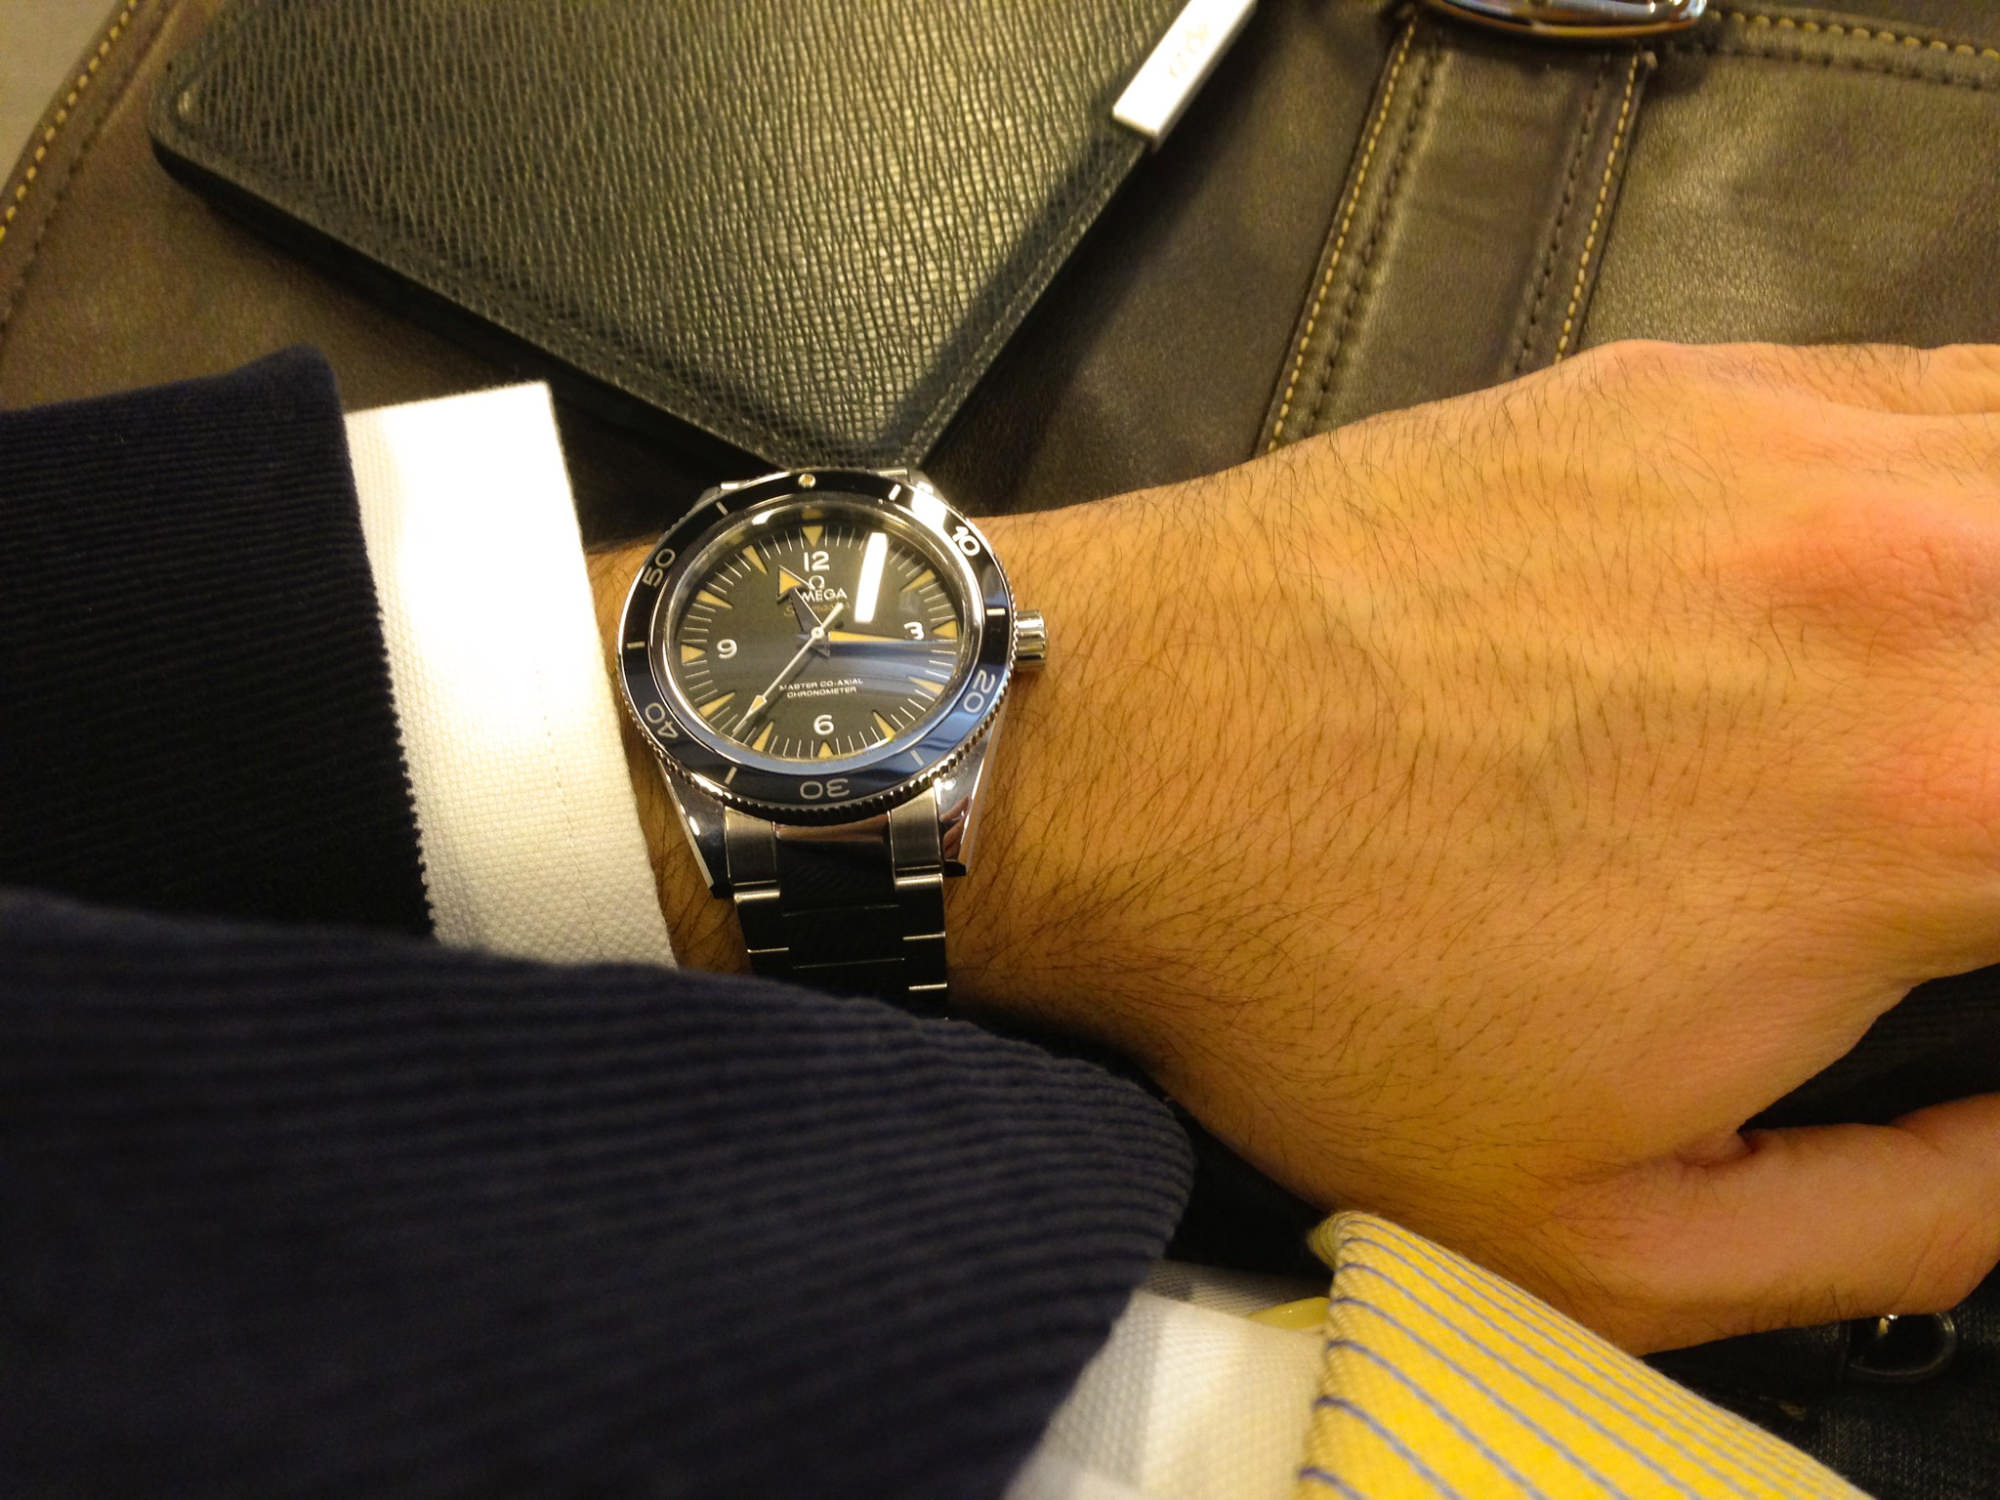 omega-seamaster-300-review-43